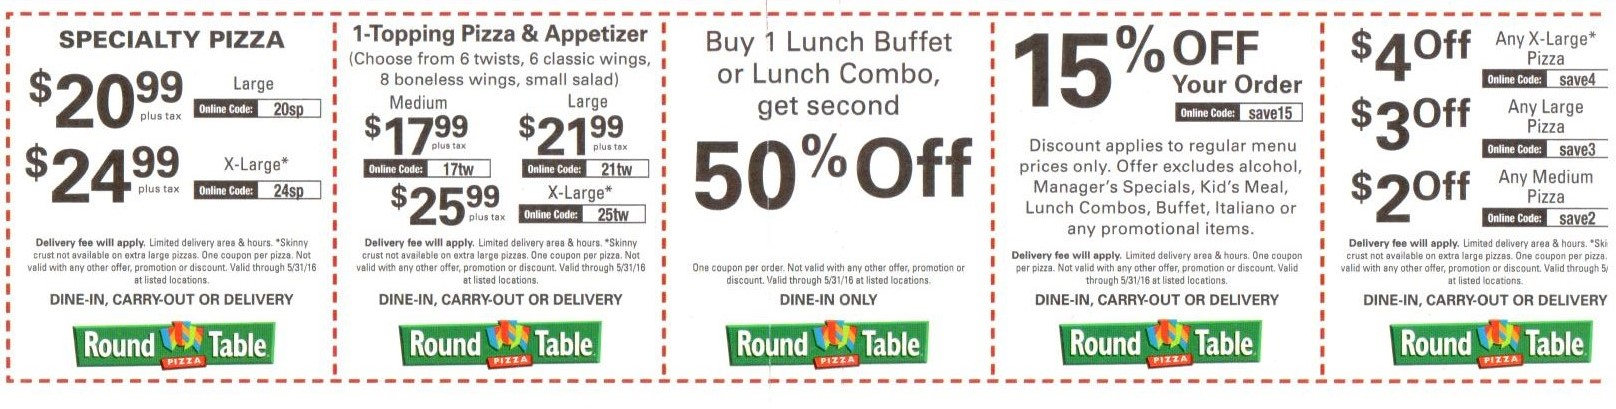 Round table coupons code